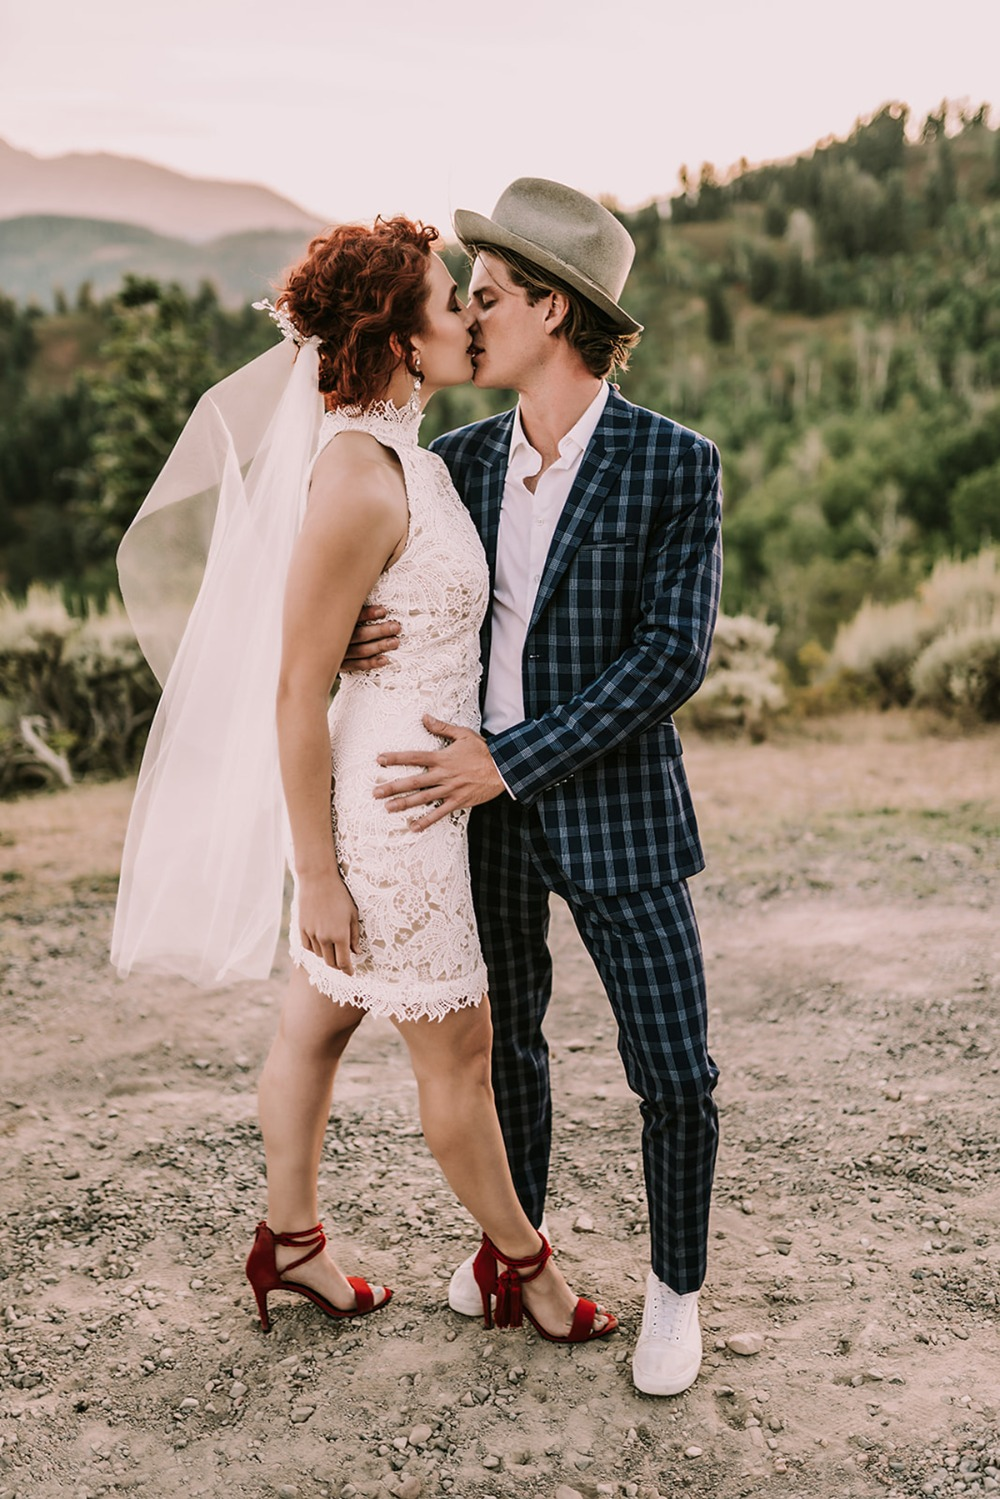 Stylish after-wedding shoot of the bride and groom